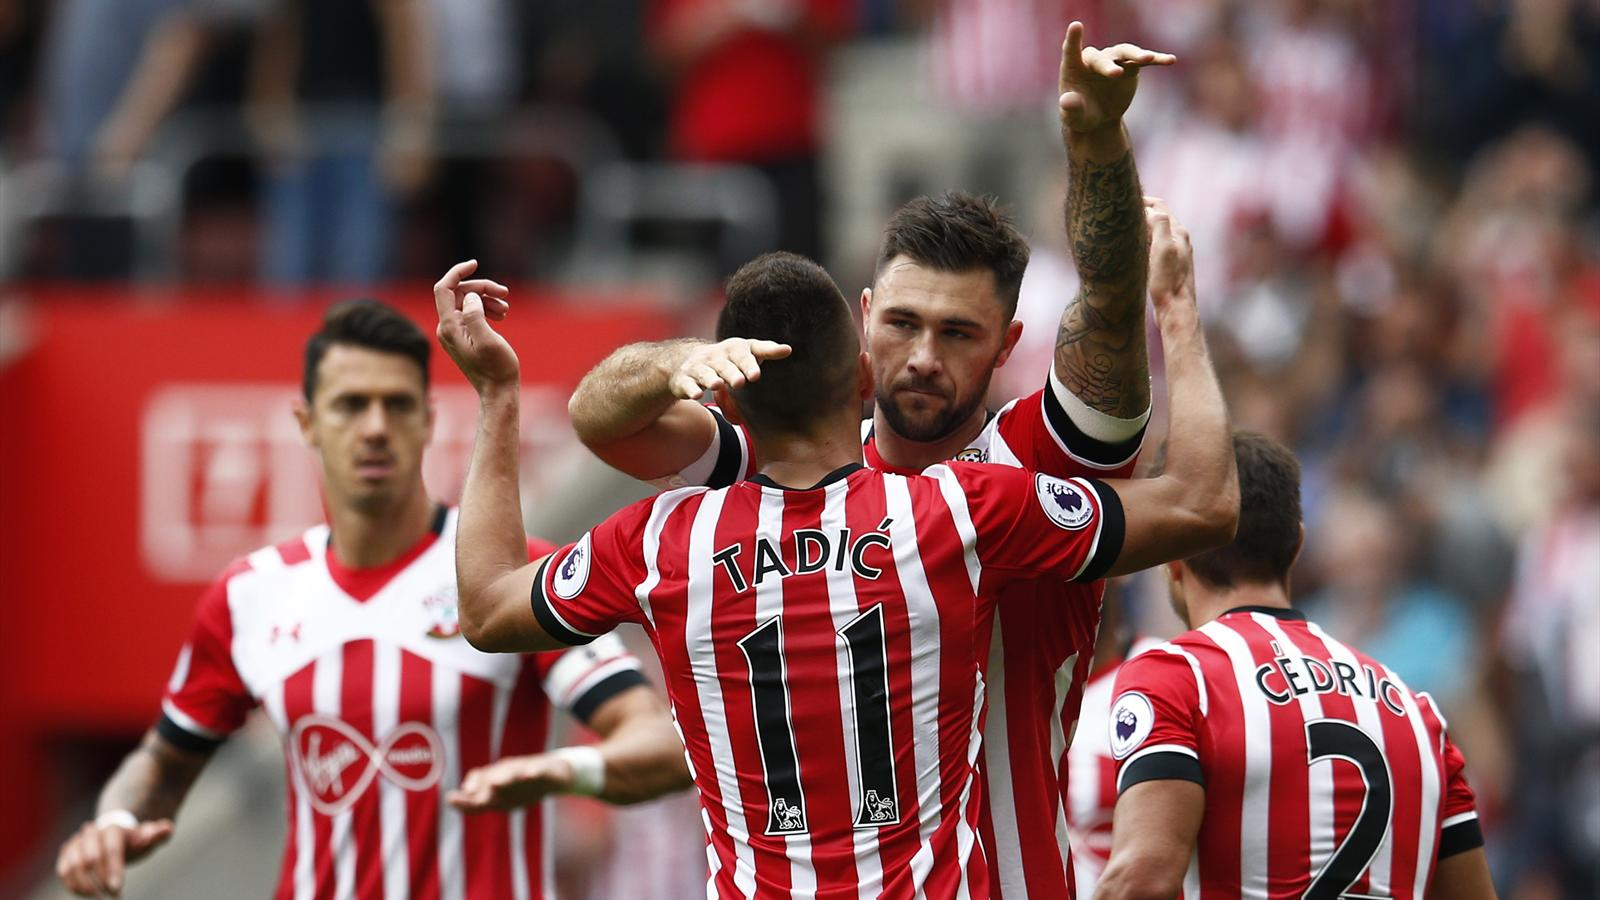 Austin on target as Southampton beat Swansea - Premier League 2016-2017 - Football - Eurosport